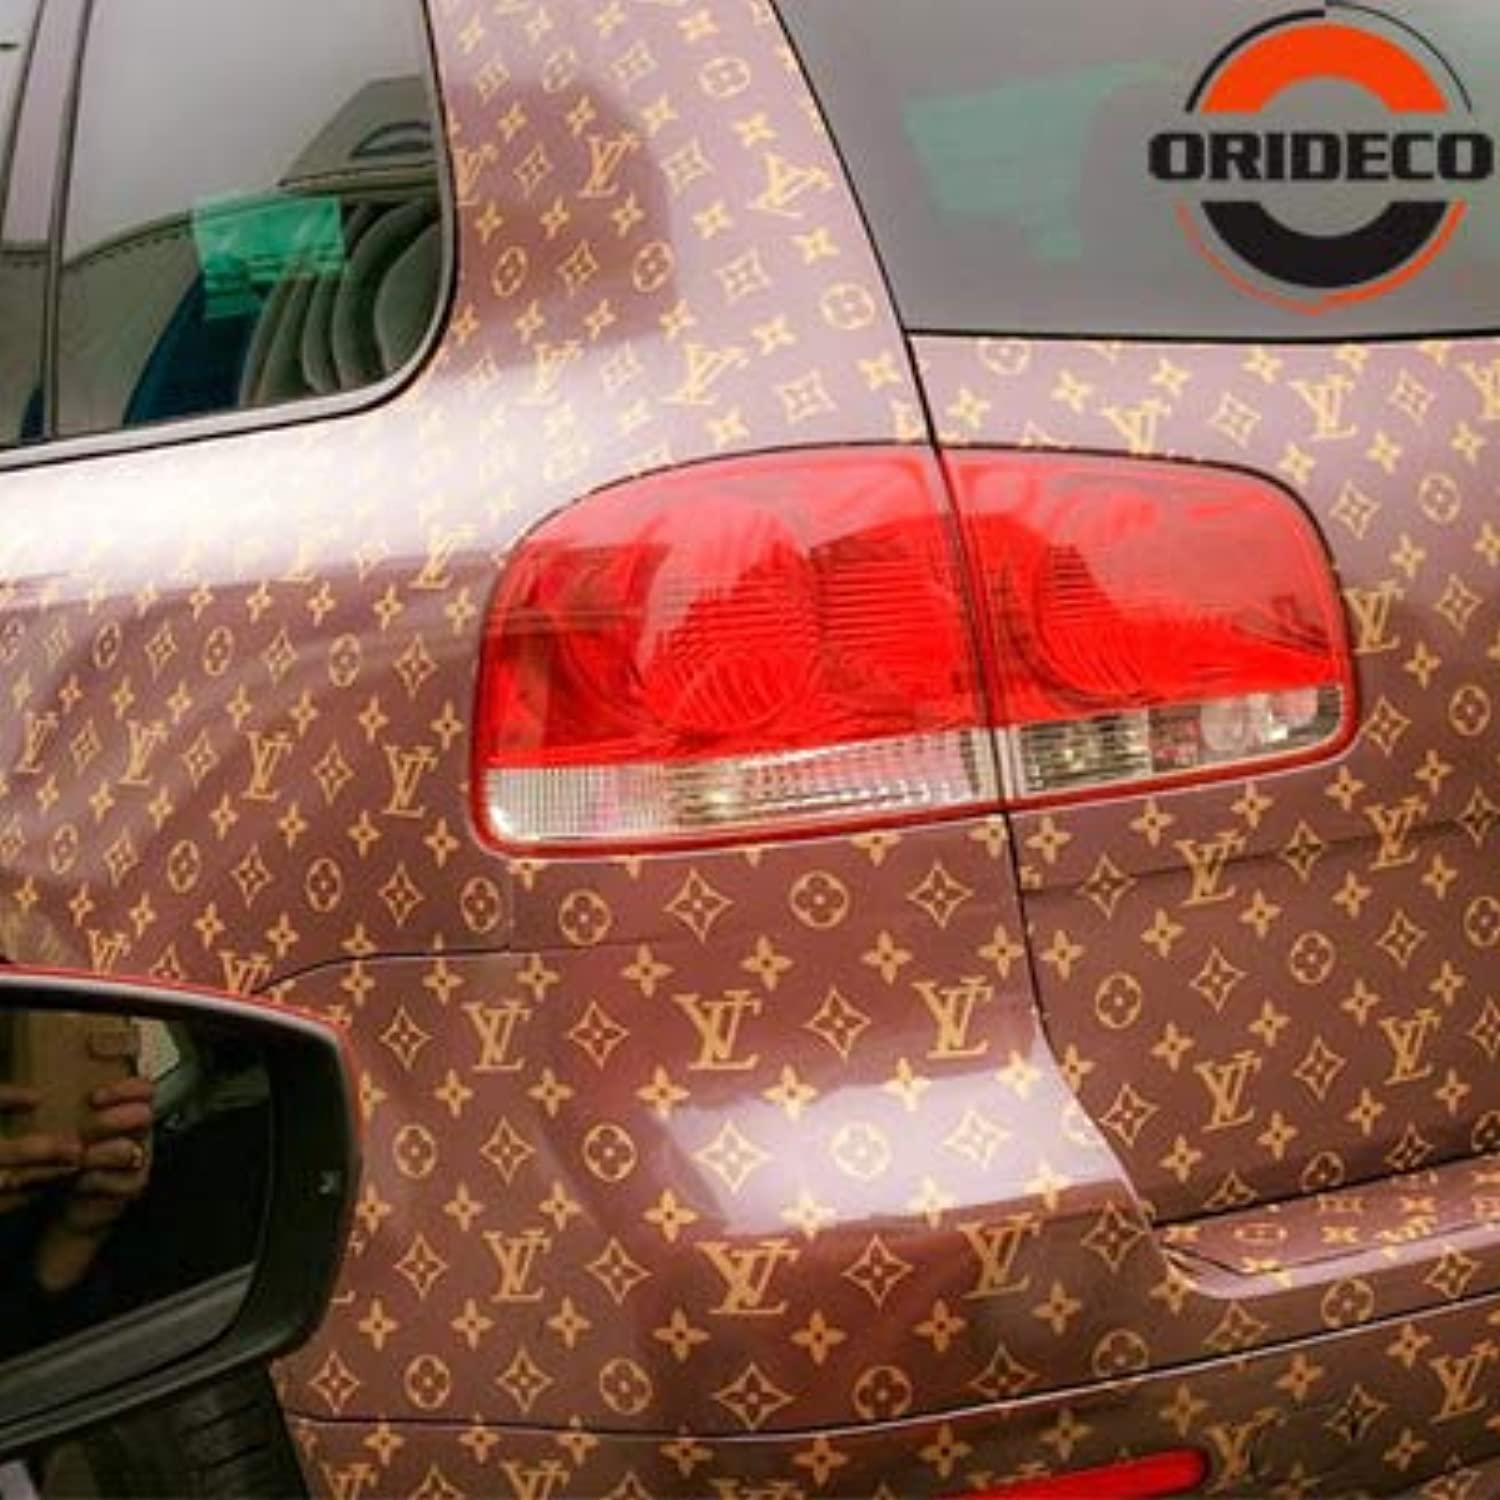 Hot Sale 5 10 15 20 25 30m Vinyl Car Wrap for Full Car Body Decorative Wrapping Film with Air Bubble Free  (color Name  Style 12, Size  1.52X15M, Style  Matte Finish)